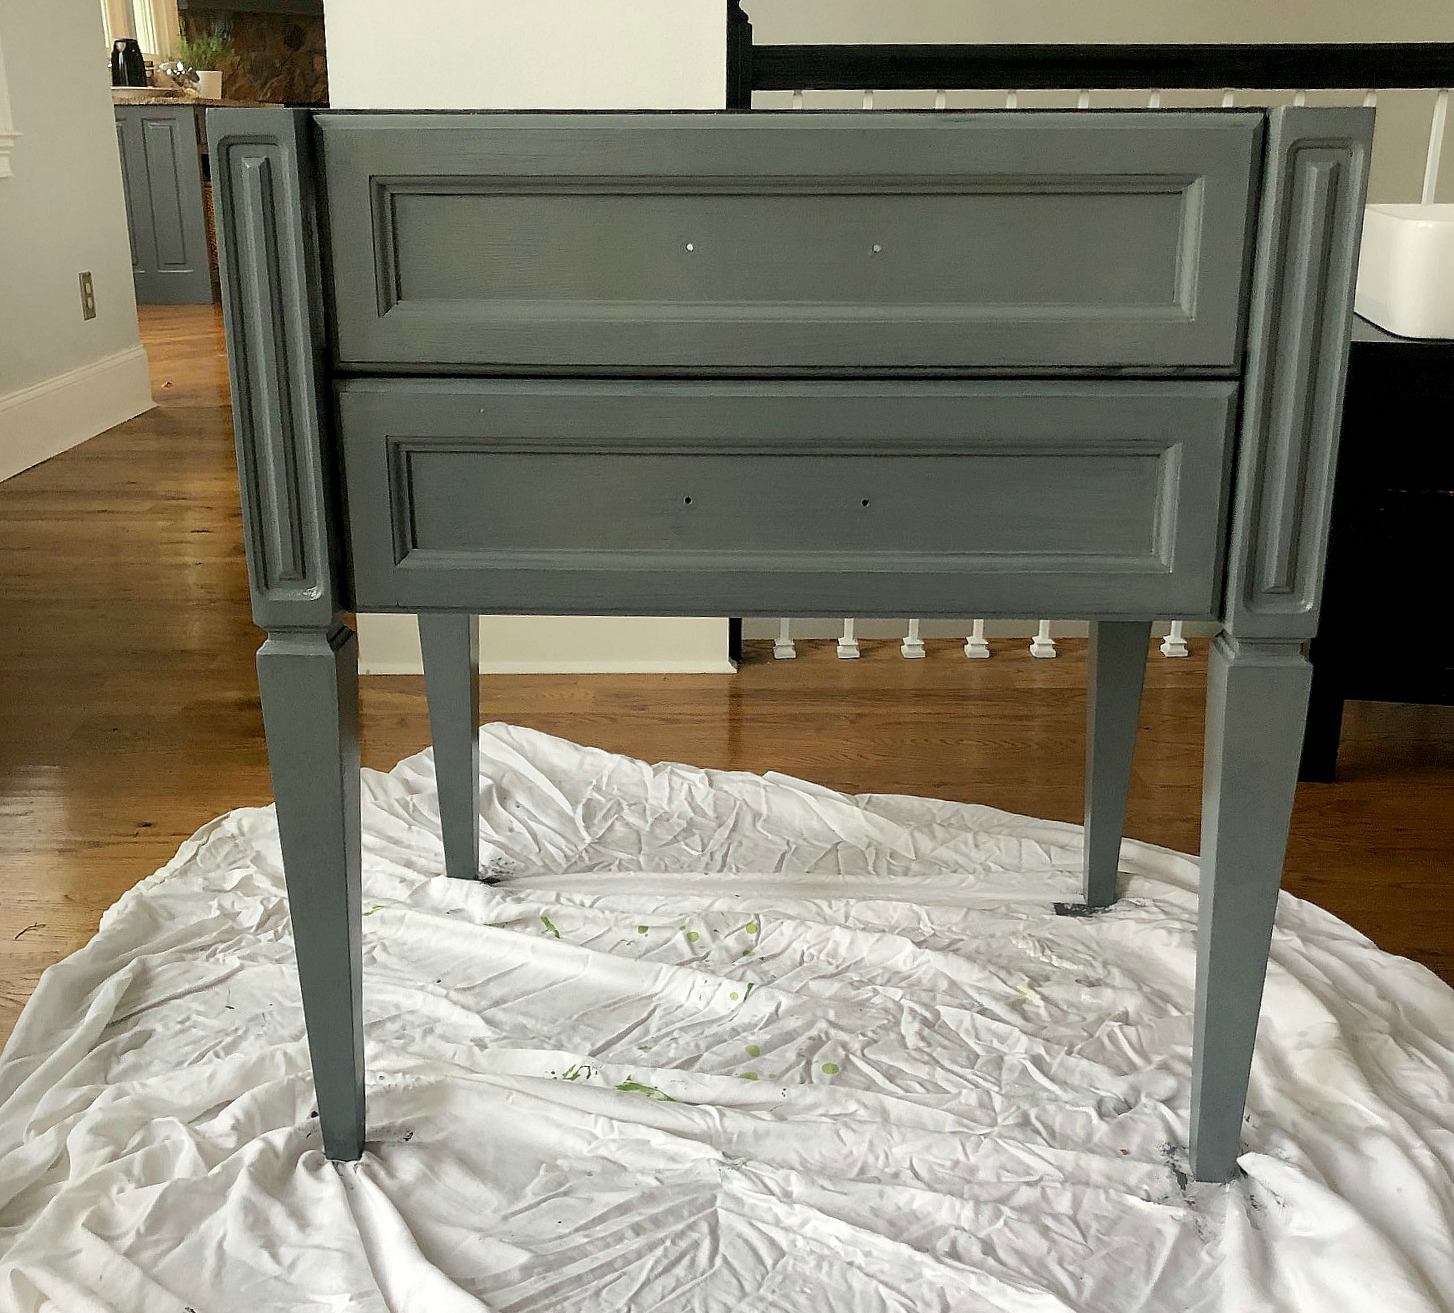 Ideas on how to update a 15 year old bathroom vanity